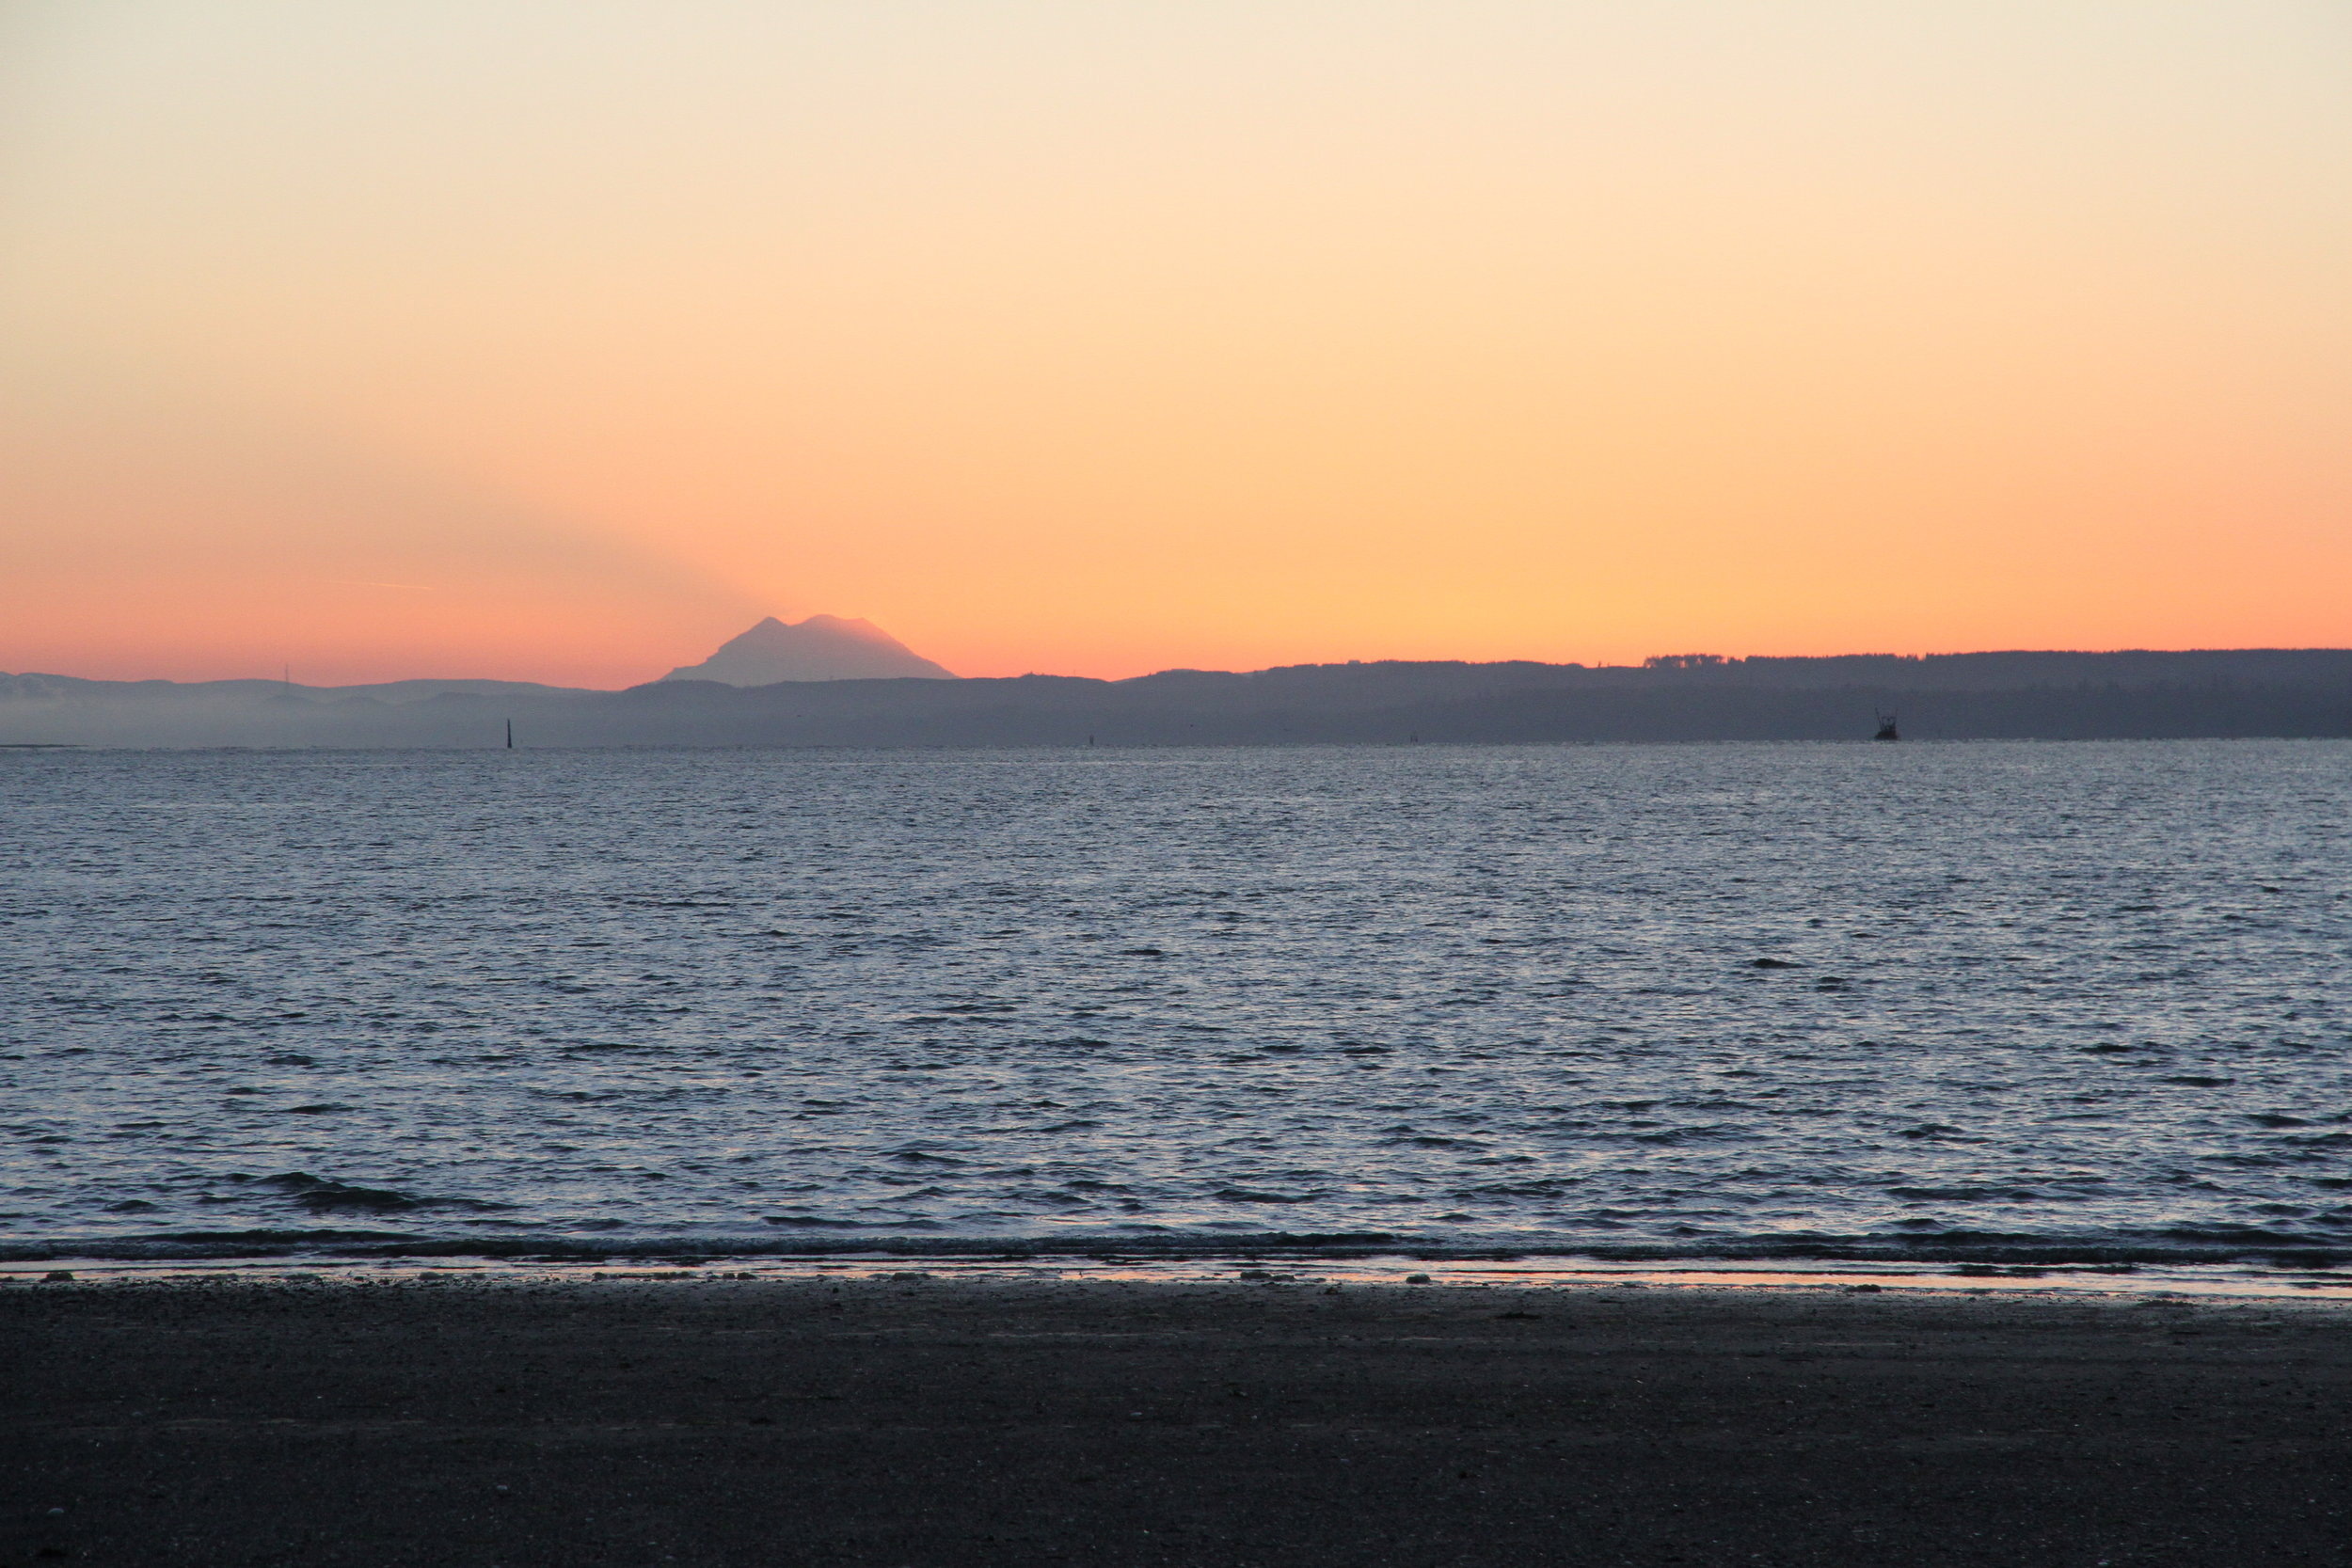 The sun rise and Mt. Rainer cast a shadow over Gray's Harbor. Tanya Pluth photo.